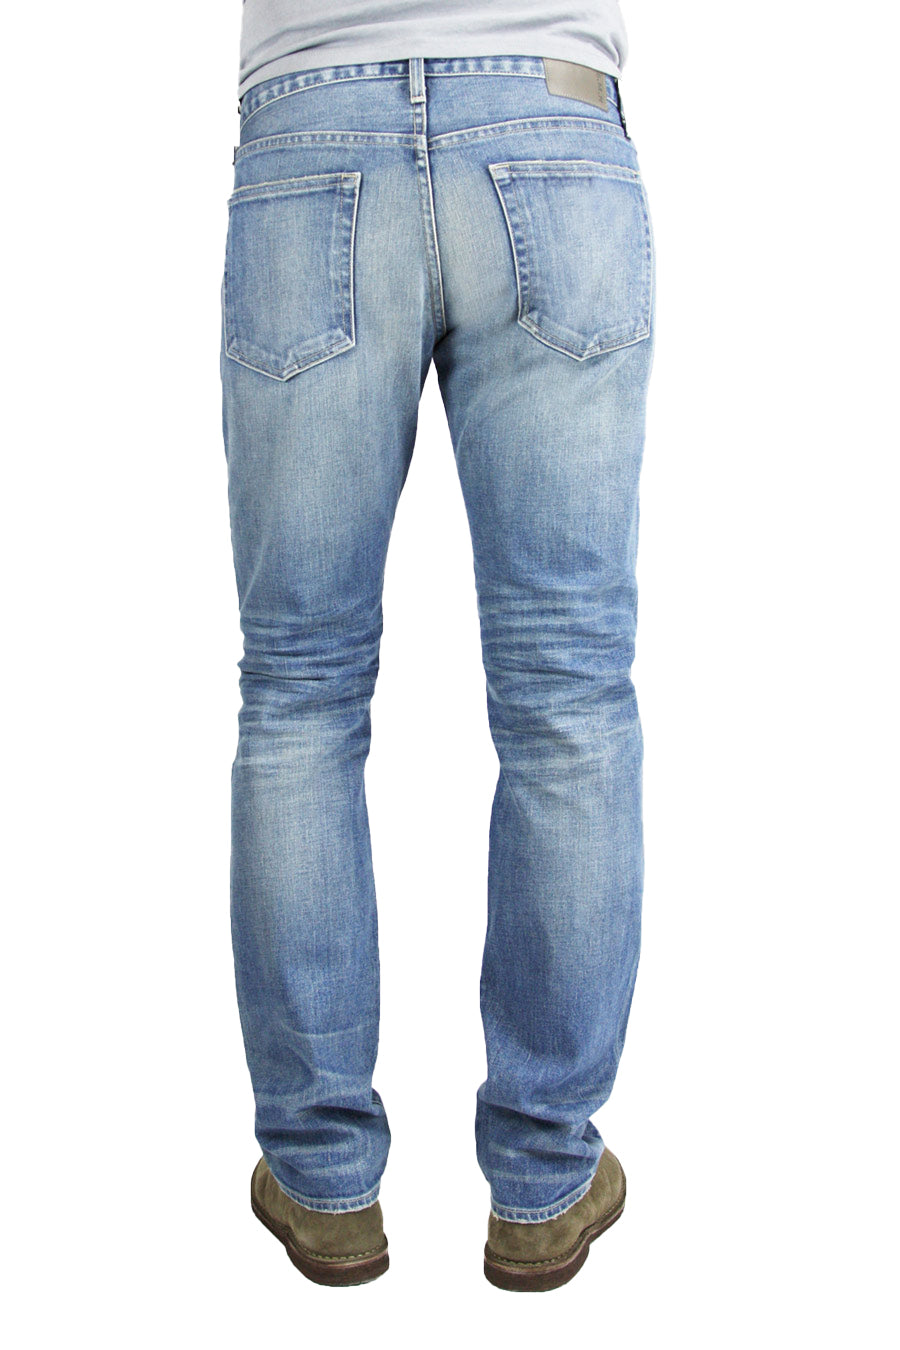 Back of S.M.N Studio's Bond in Western Men's Jeans - Slim Straight Comfort Stretch Denim in vintage light wash denim contrasted with light fading and whiskering